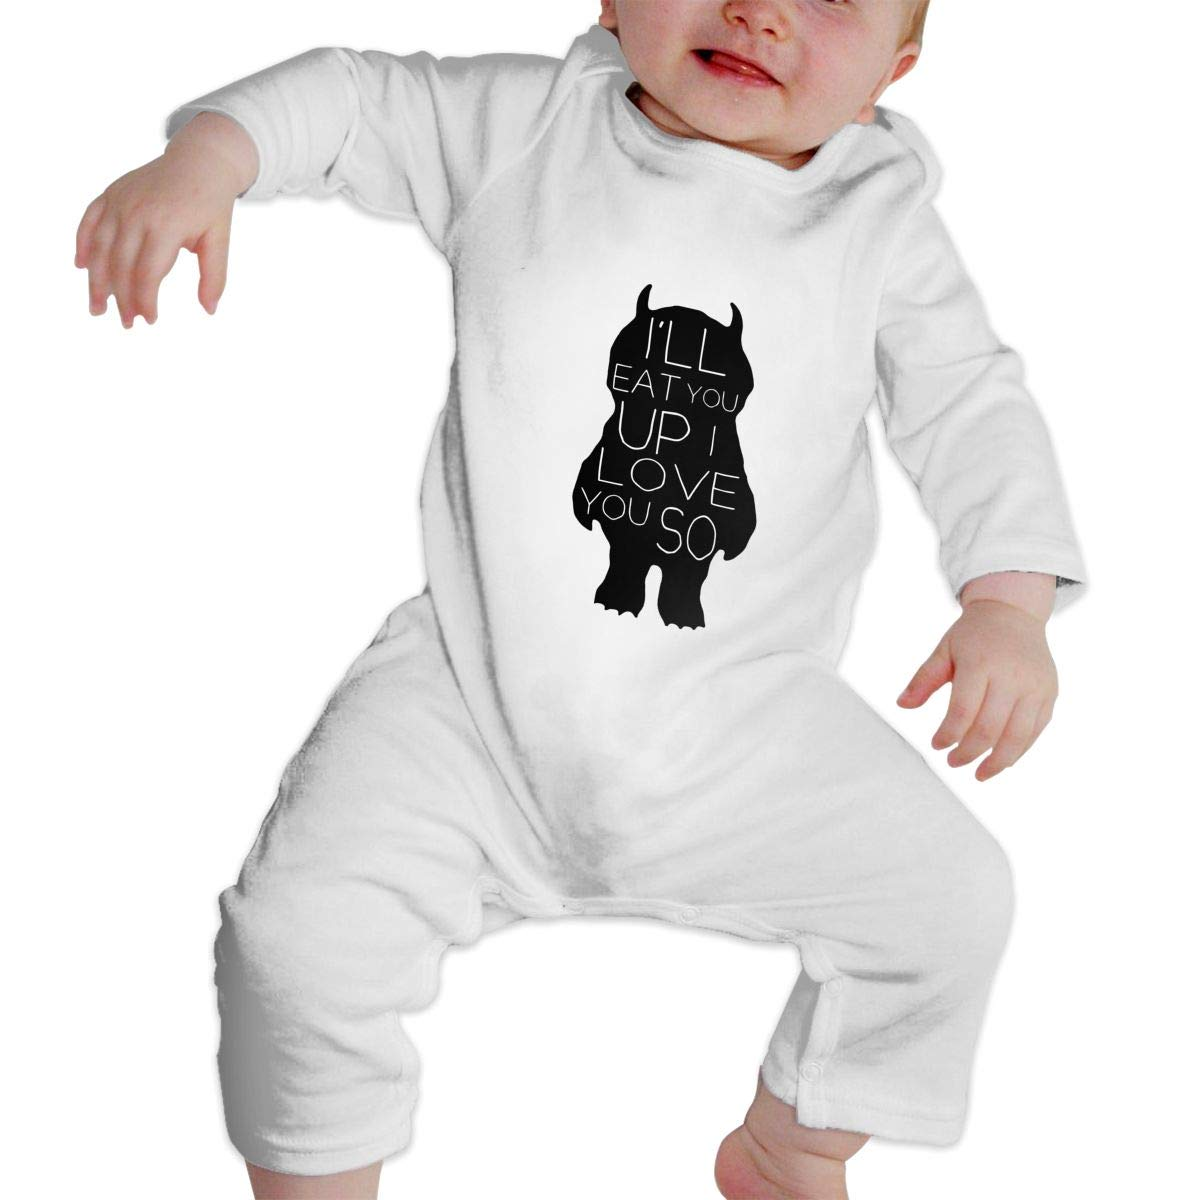 Ill Eat You Up I Love You So Newborn Baby Long Sleeve Bodysuits Rompers Outfits